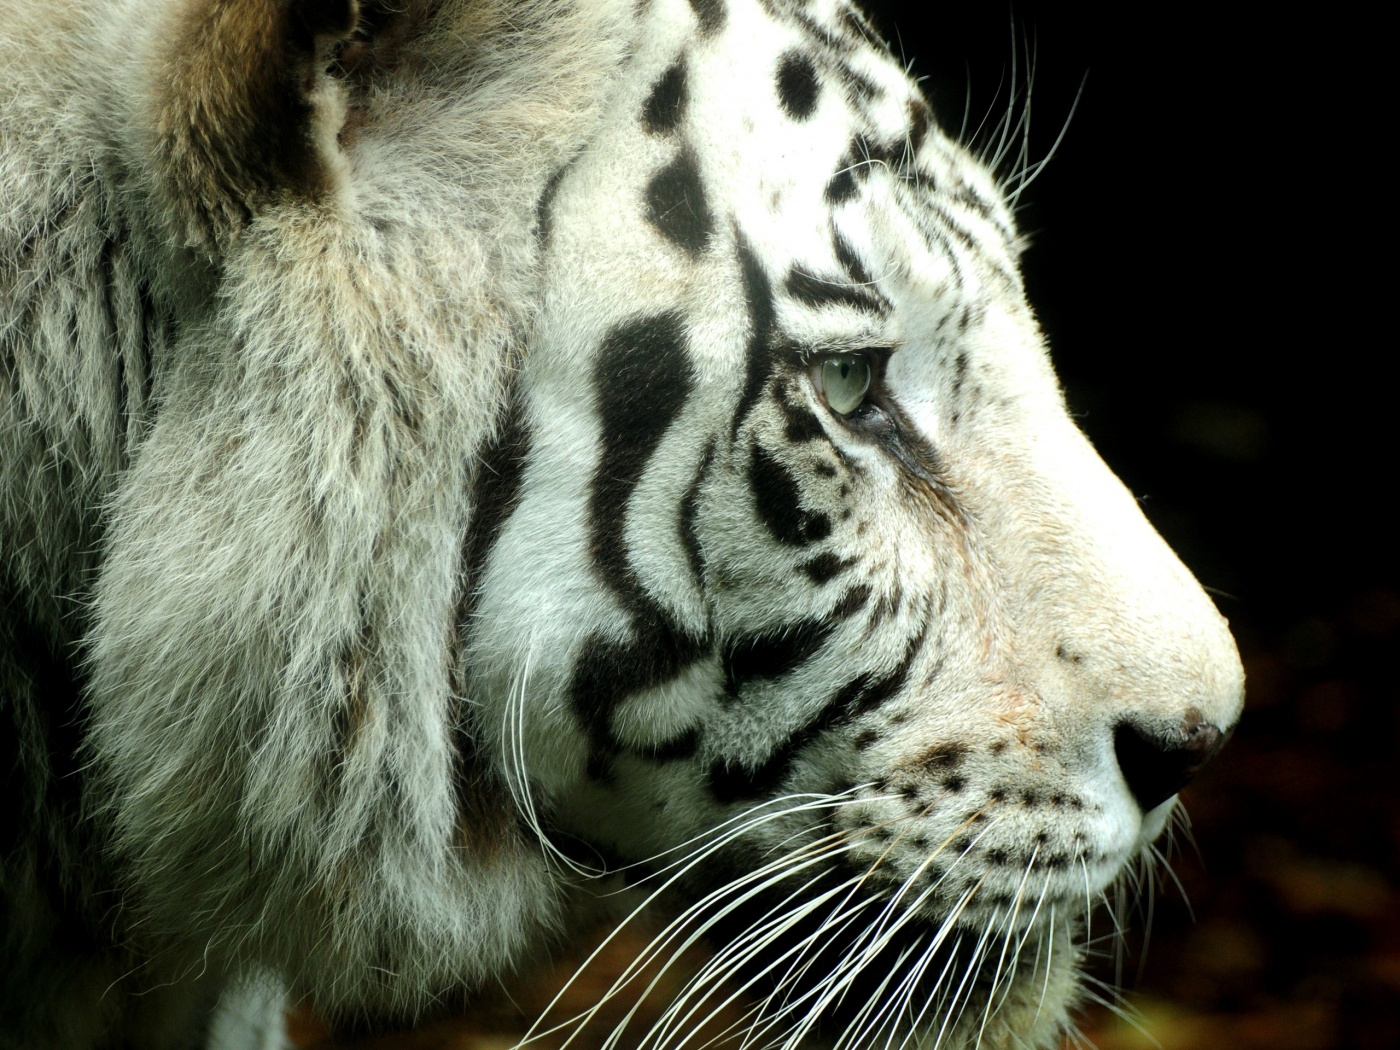 White Tigers Hd 1400x1050px Wallpapers 698 Animal   bwallescom 1400x1050